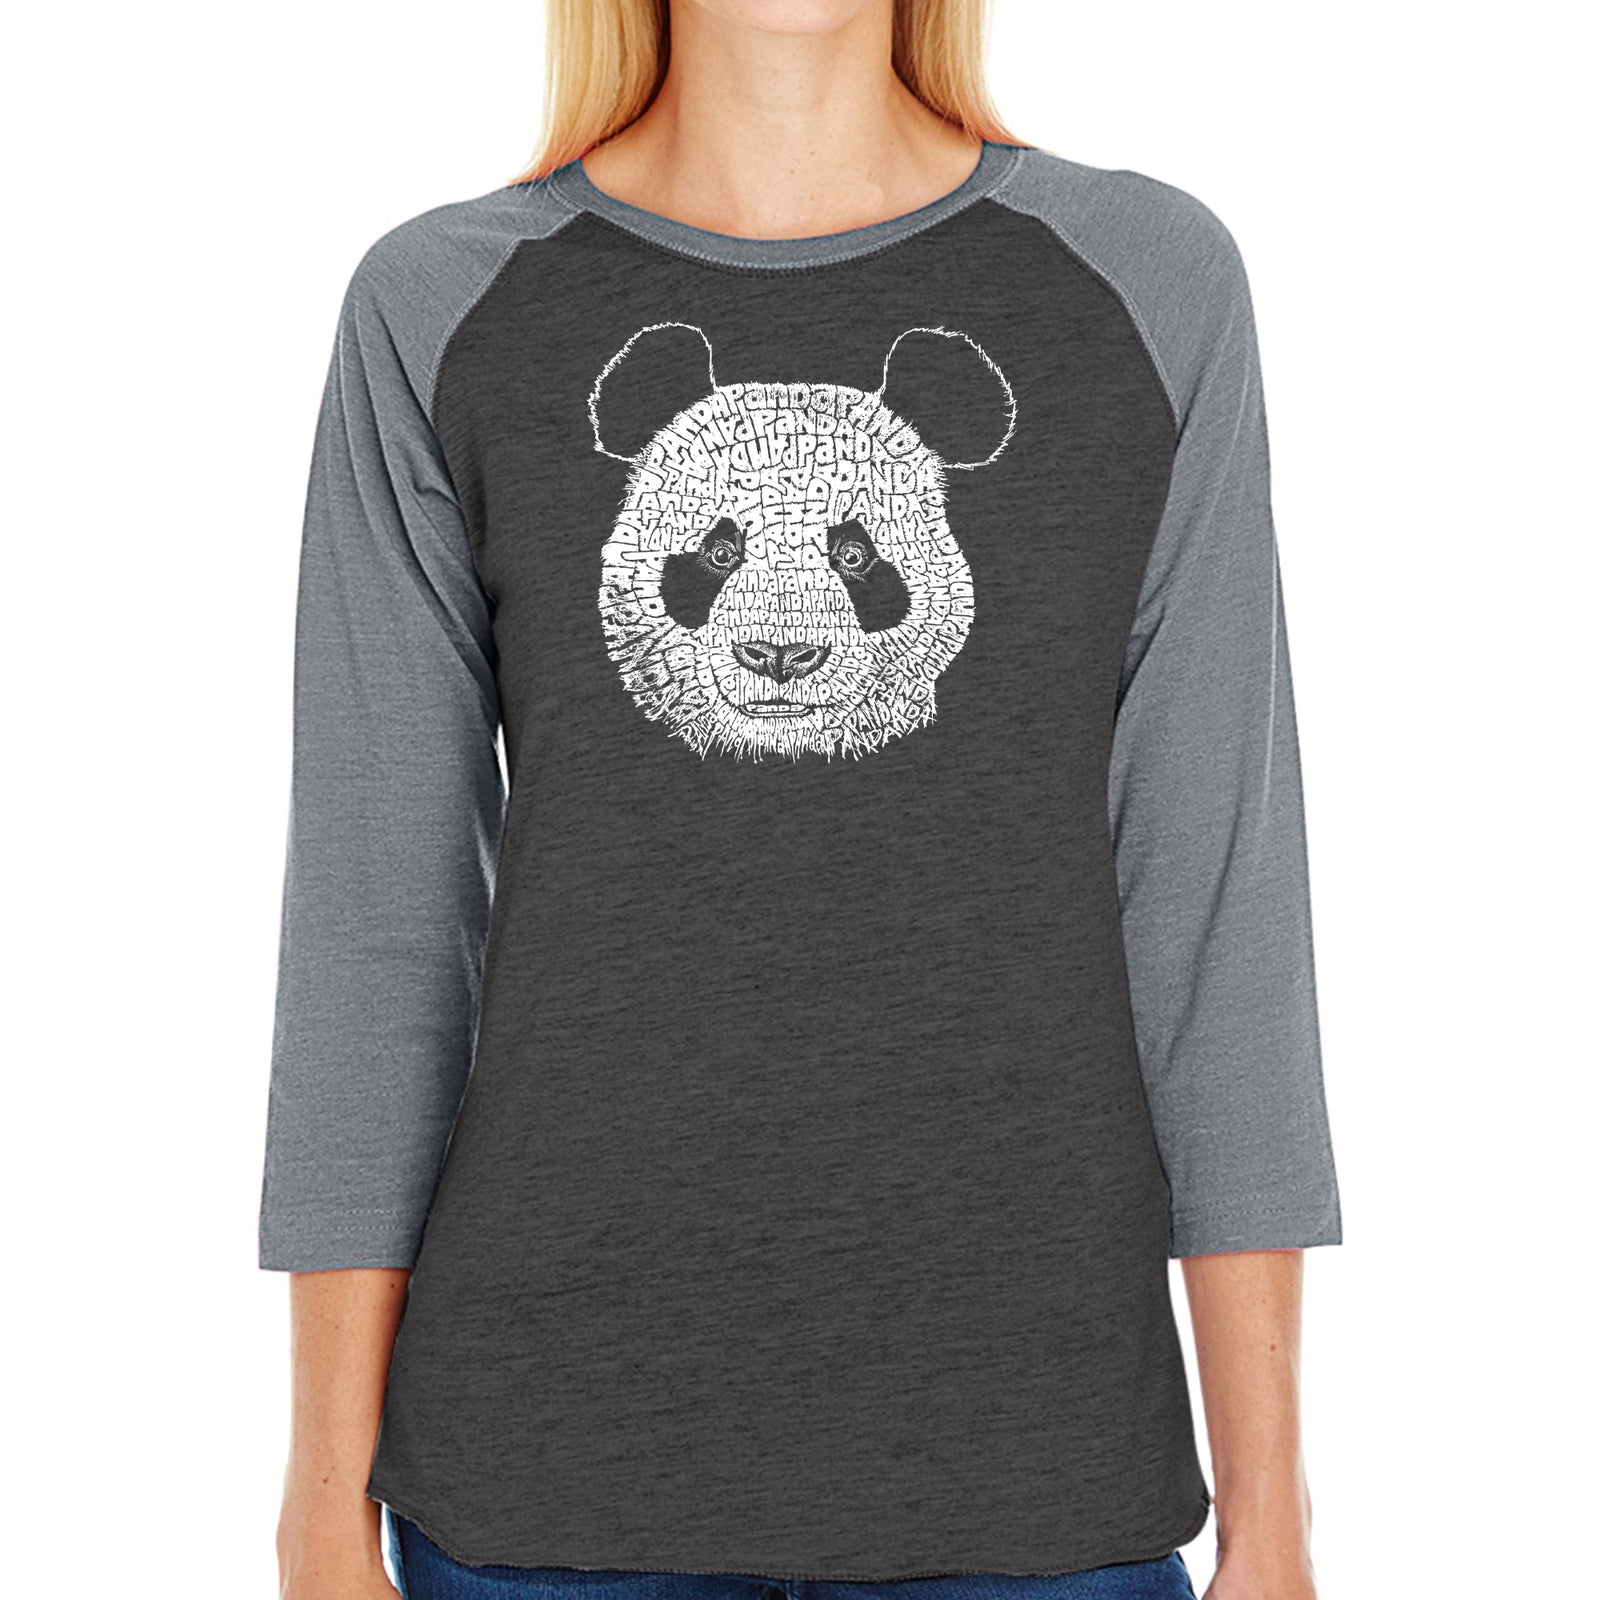 Women's Raglan Baseball Word Art T-shirt - Panda